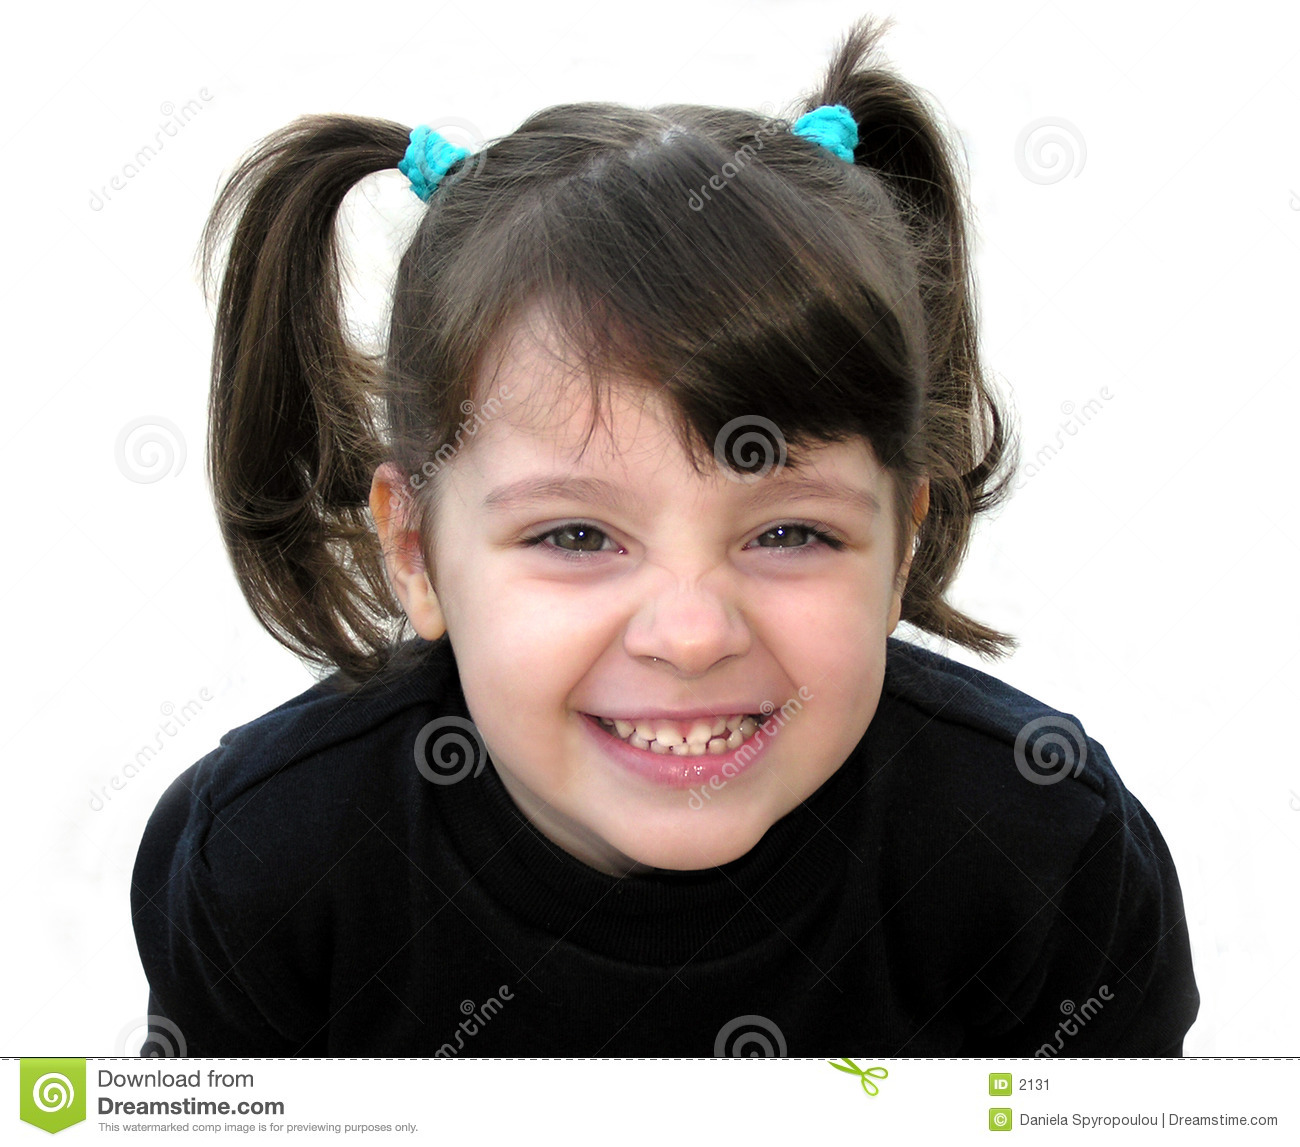 A little girl smiling